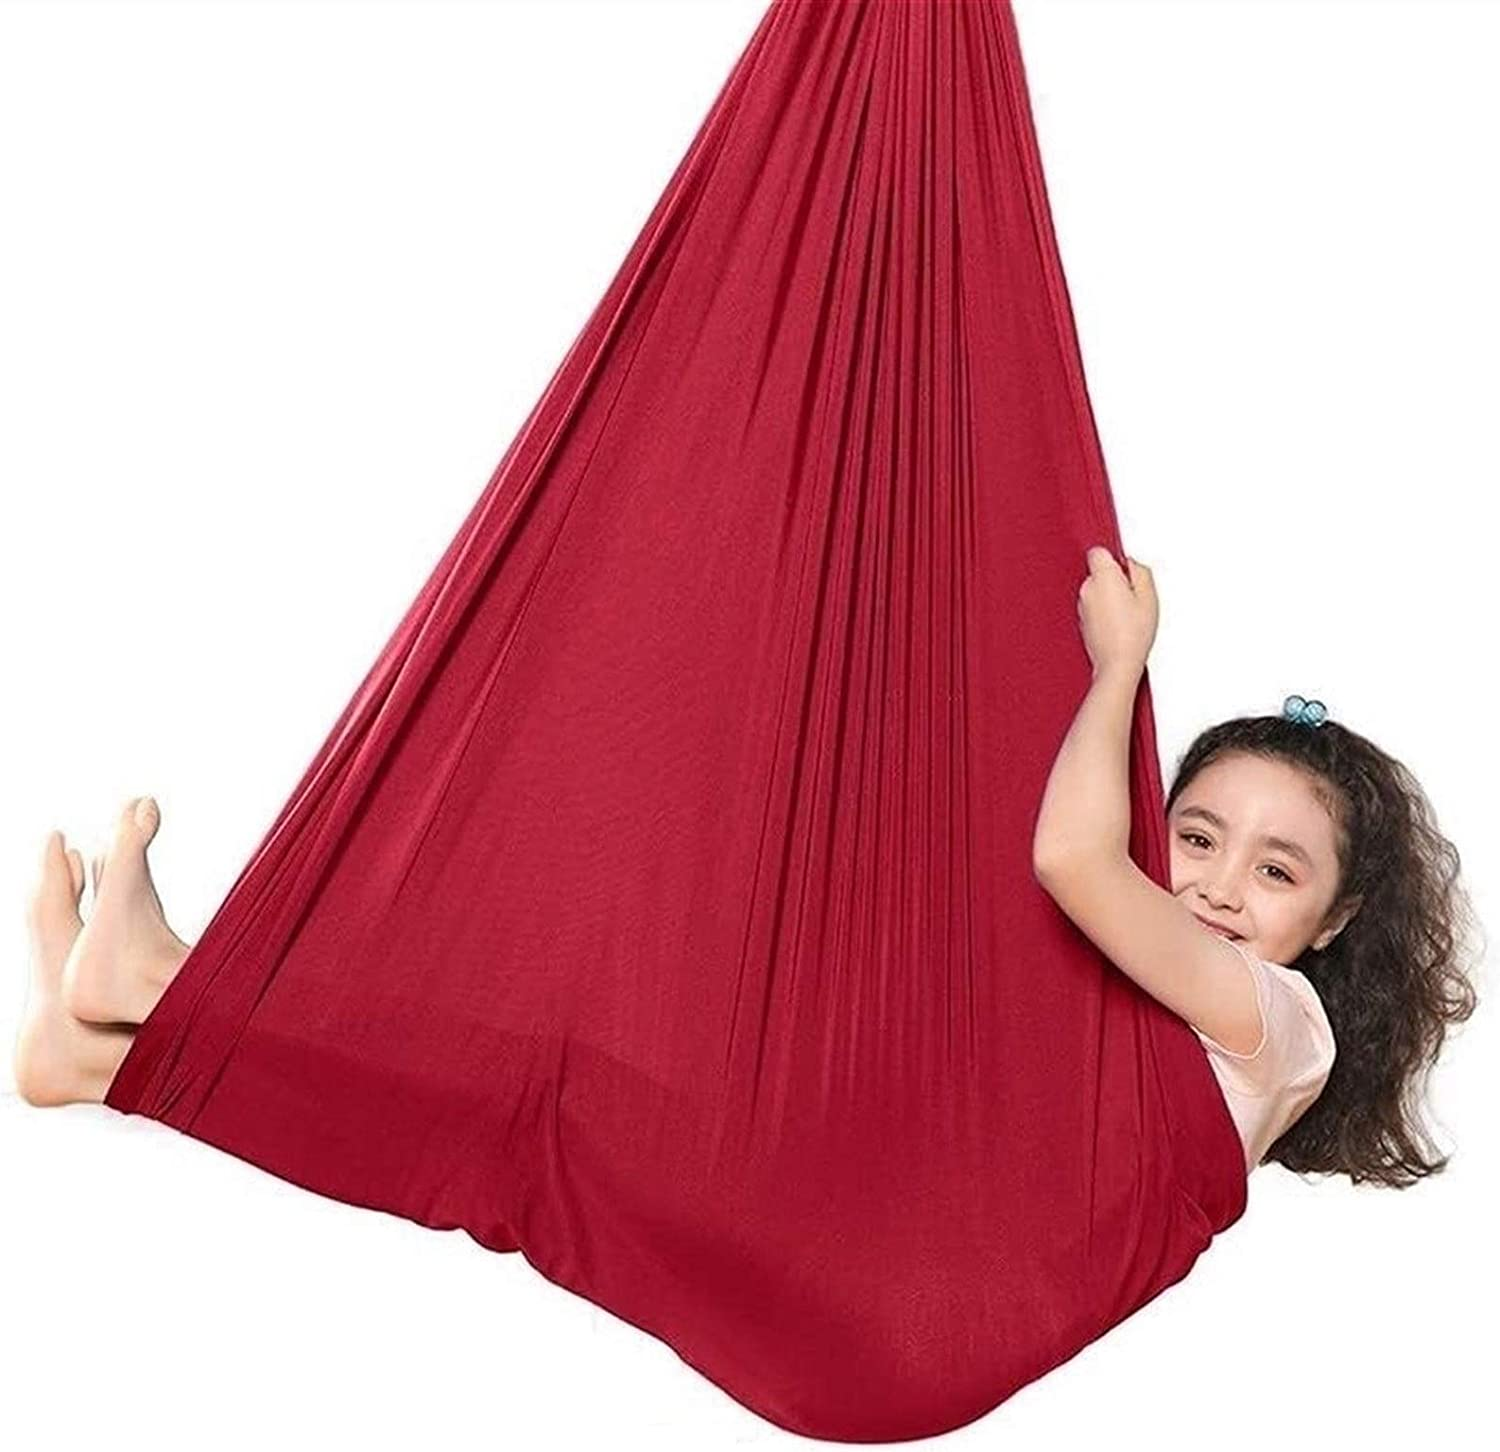 LICHUXIN Sensory Nylon Swing for P Product Soothing Hammock Kids Discount is also underway